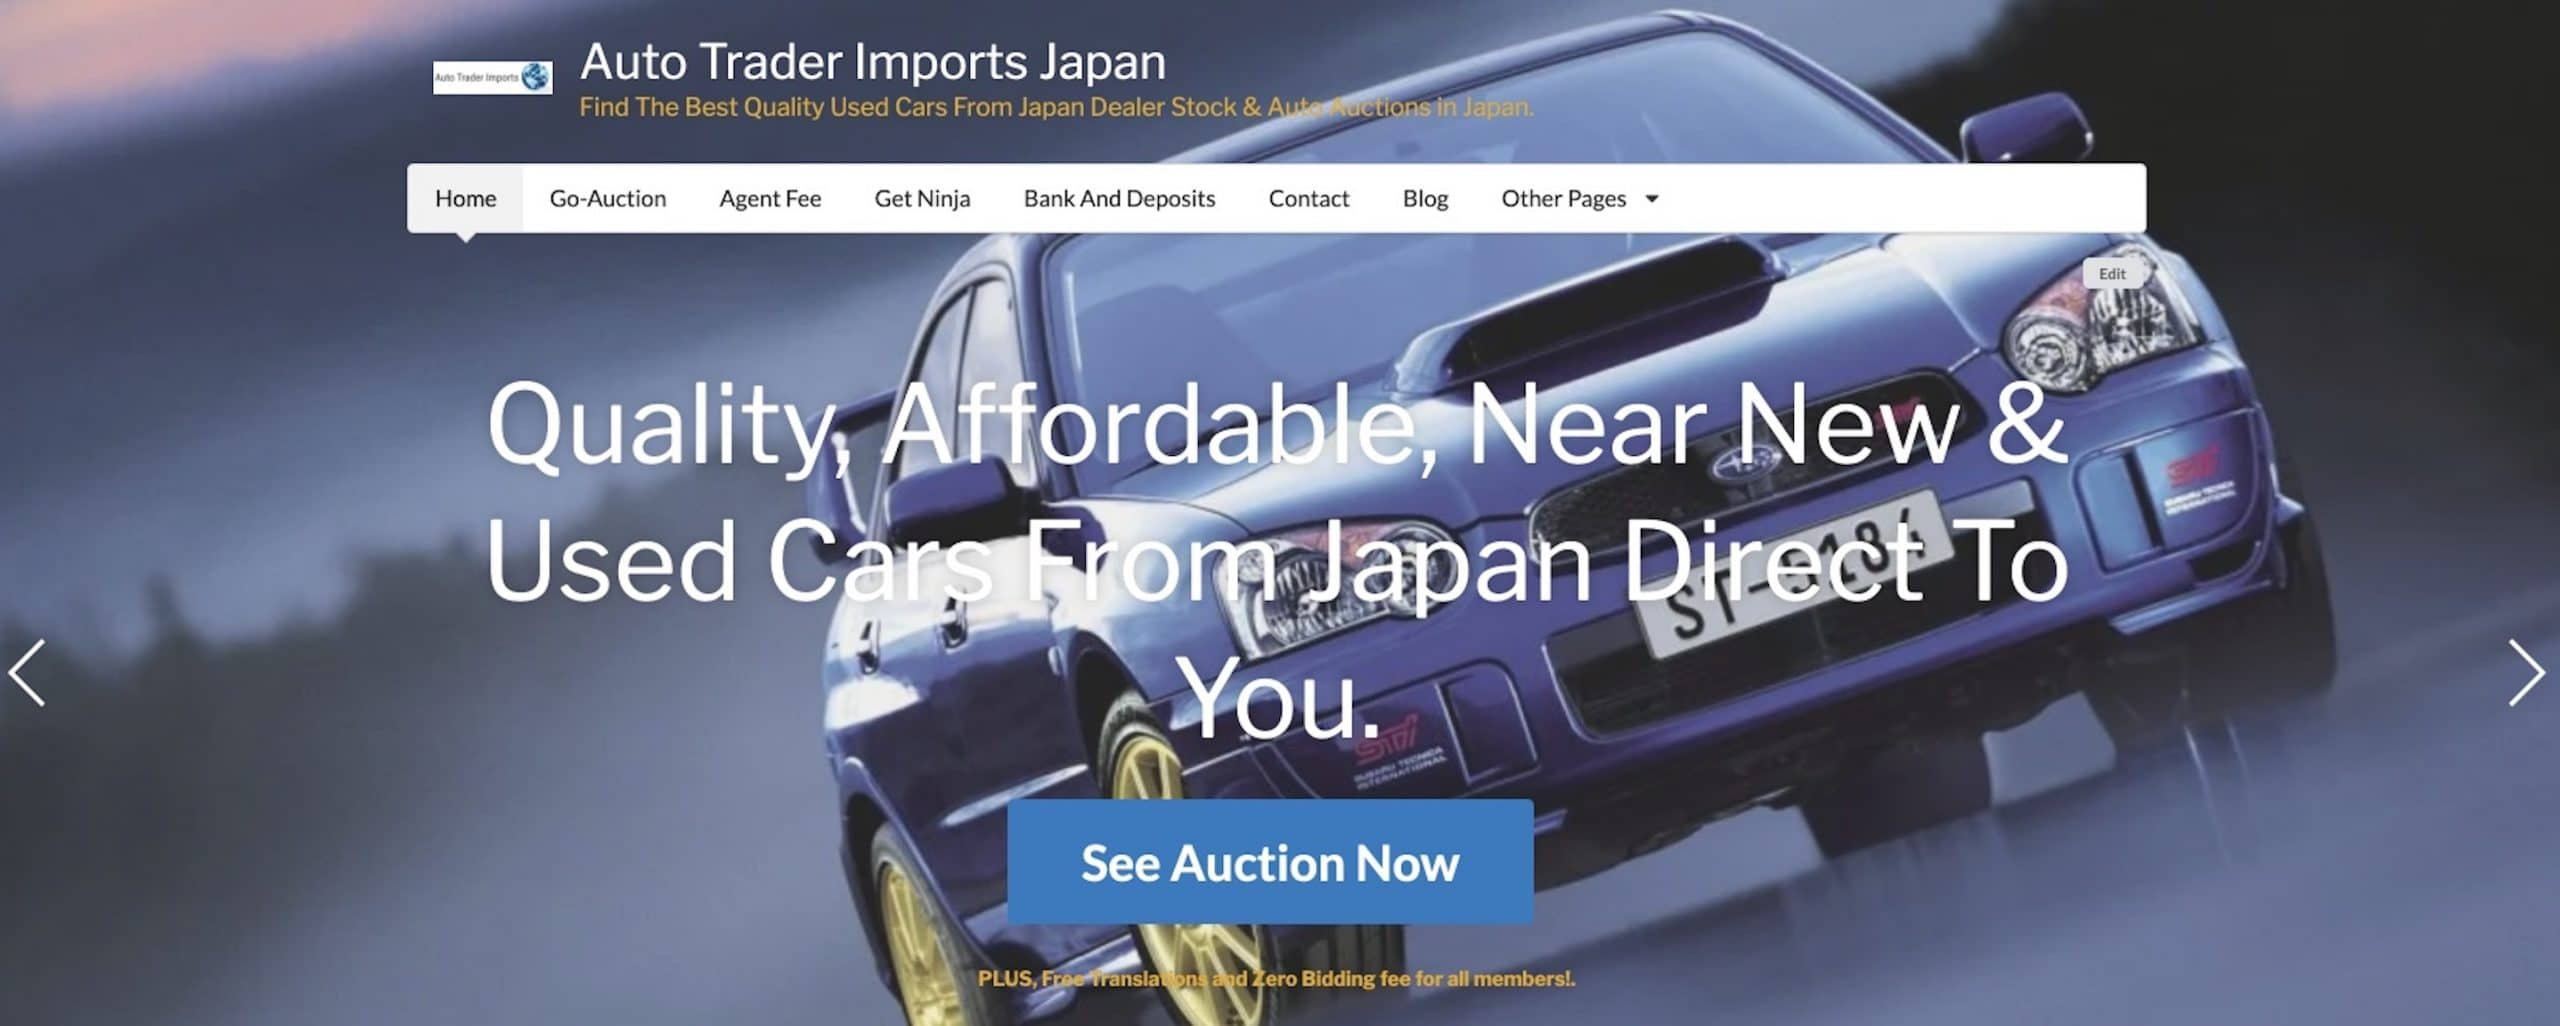 For the best Cars From Japan see Auto Trader Imports